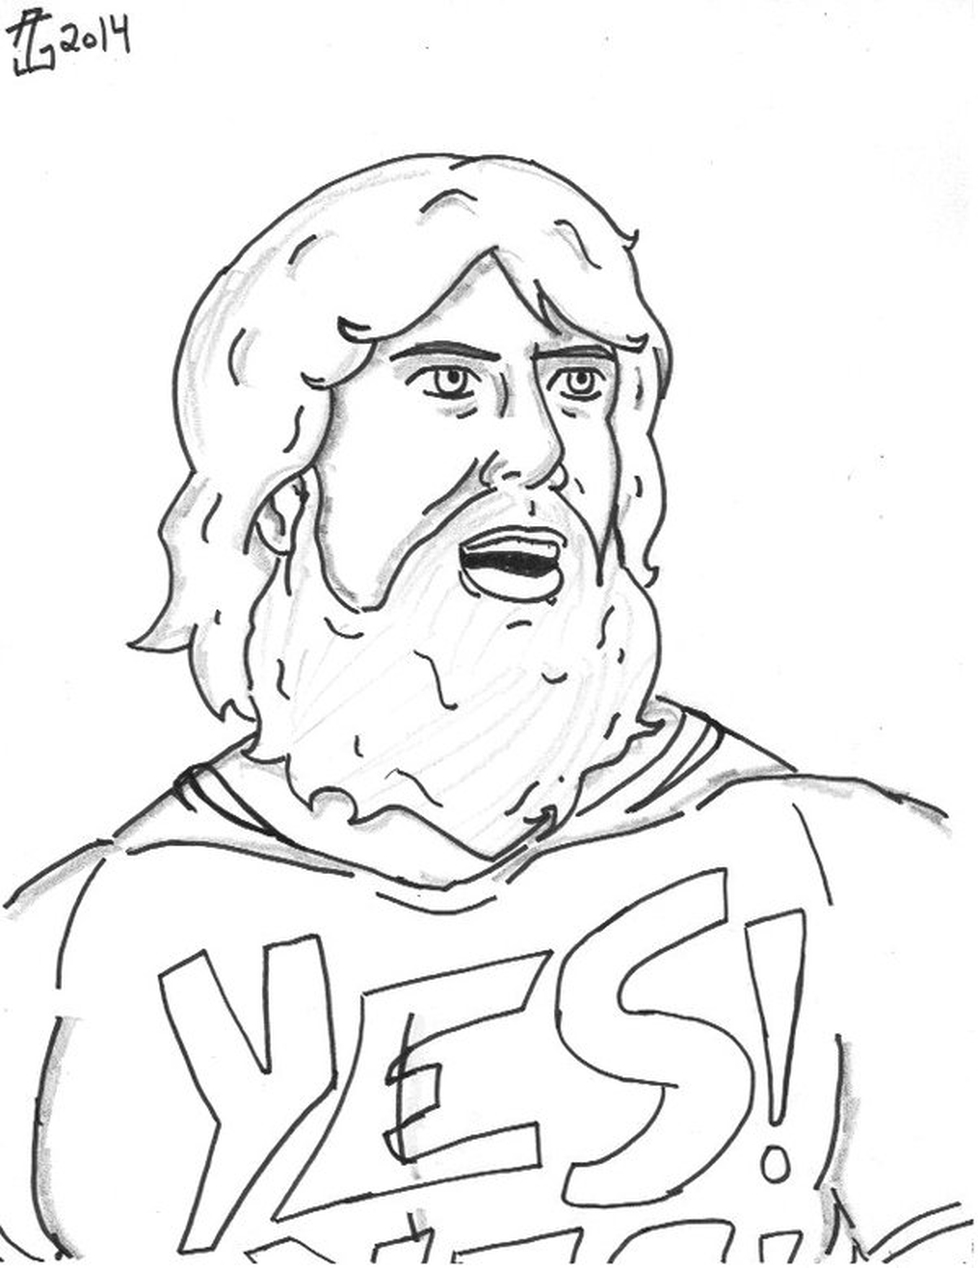 Wwe coloring pages to print - Printable Wwe Coloring Pages Daniel Bryan 32901